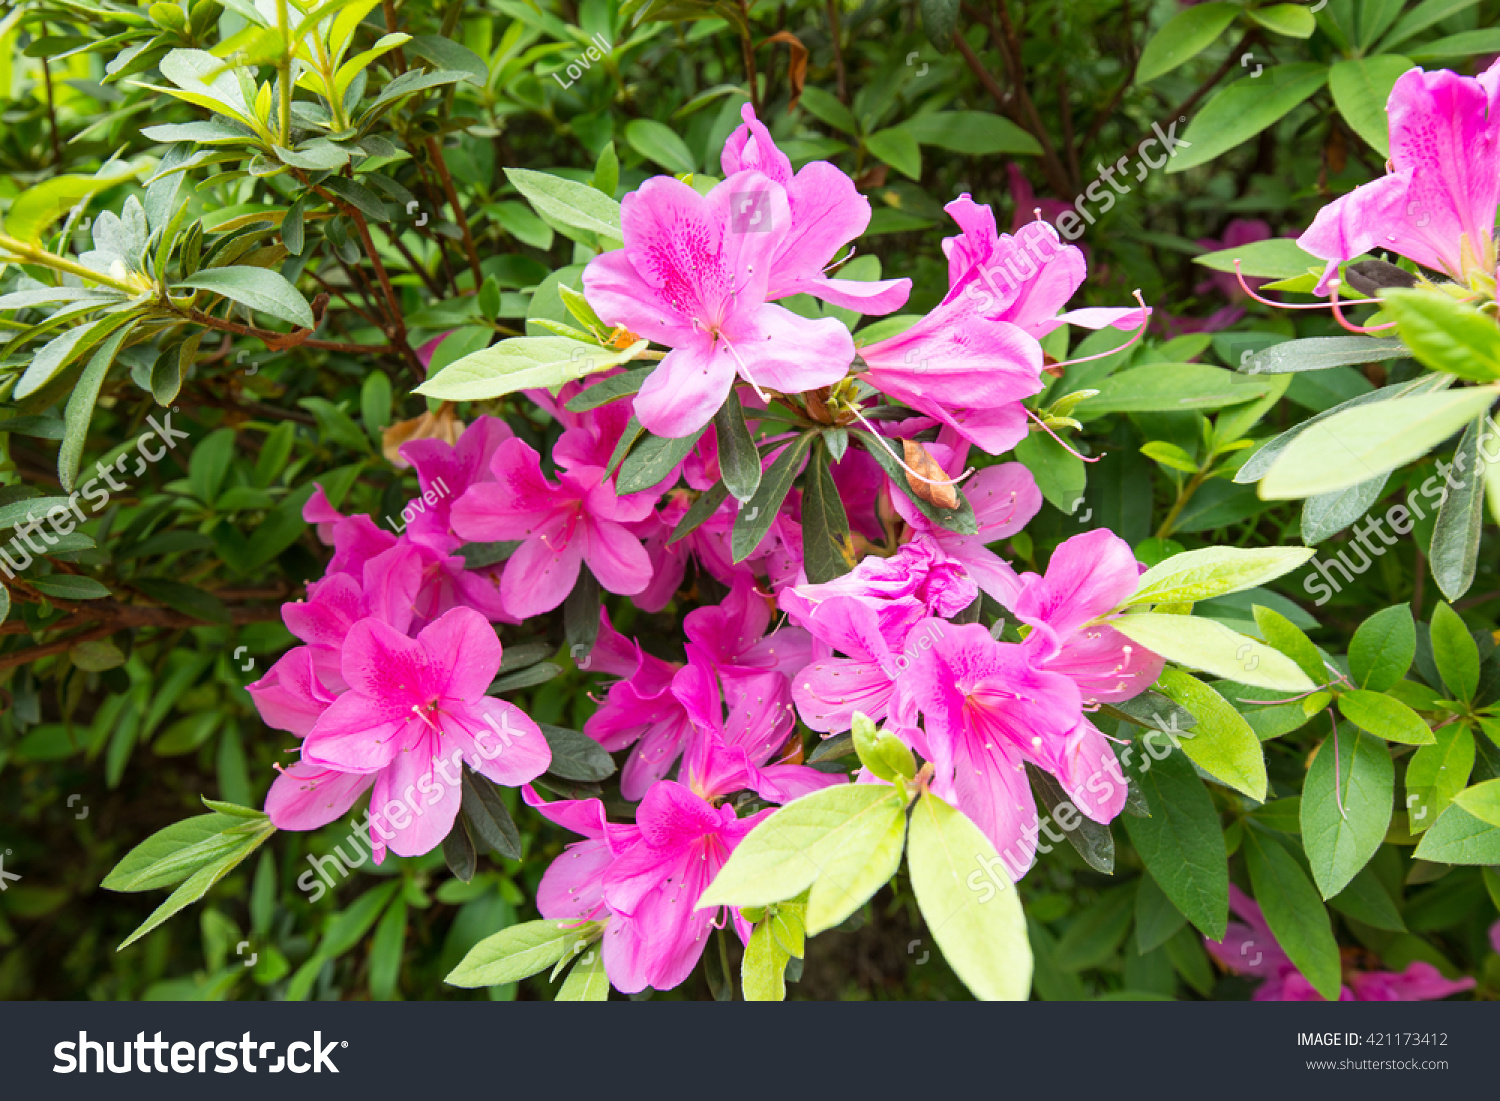 Pretty Pink Colored Flowers On Bush Stock Photo Edit Now 421173412